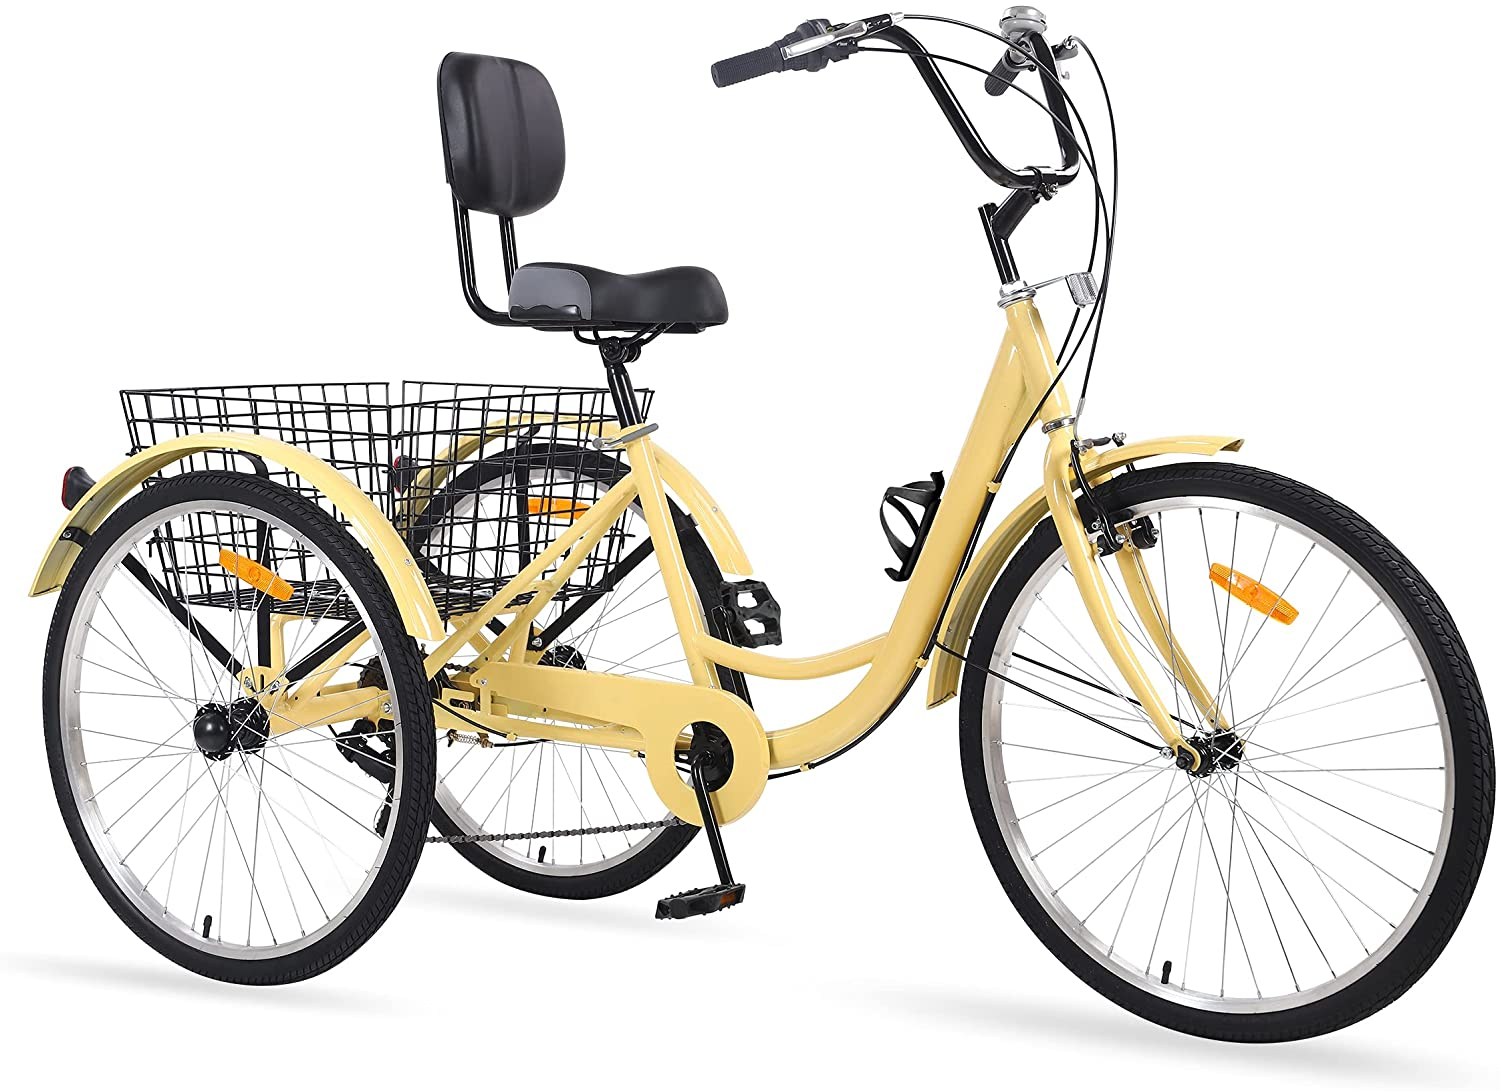 Sibosen Adult Tricycles 7 Speed Trike 26 24 20 67% OFF of fixed price Translated inch Bike